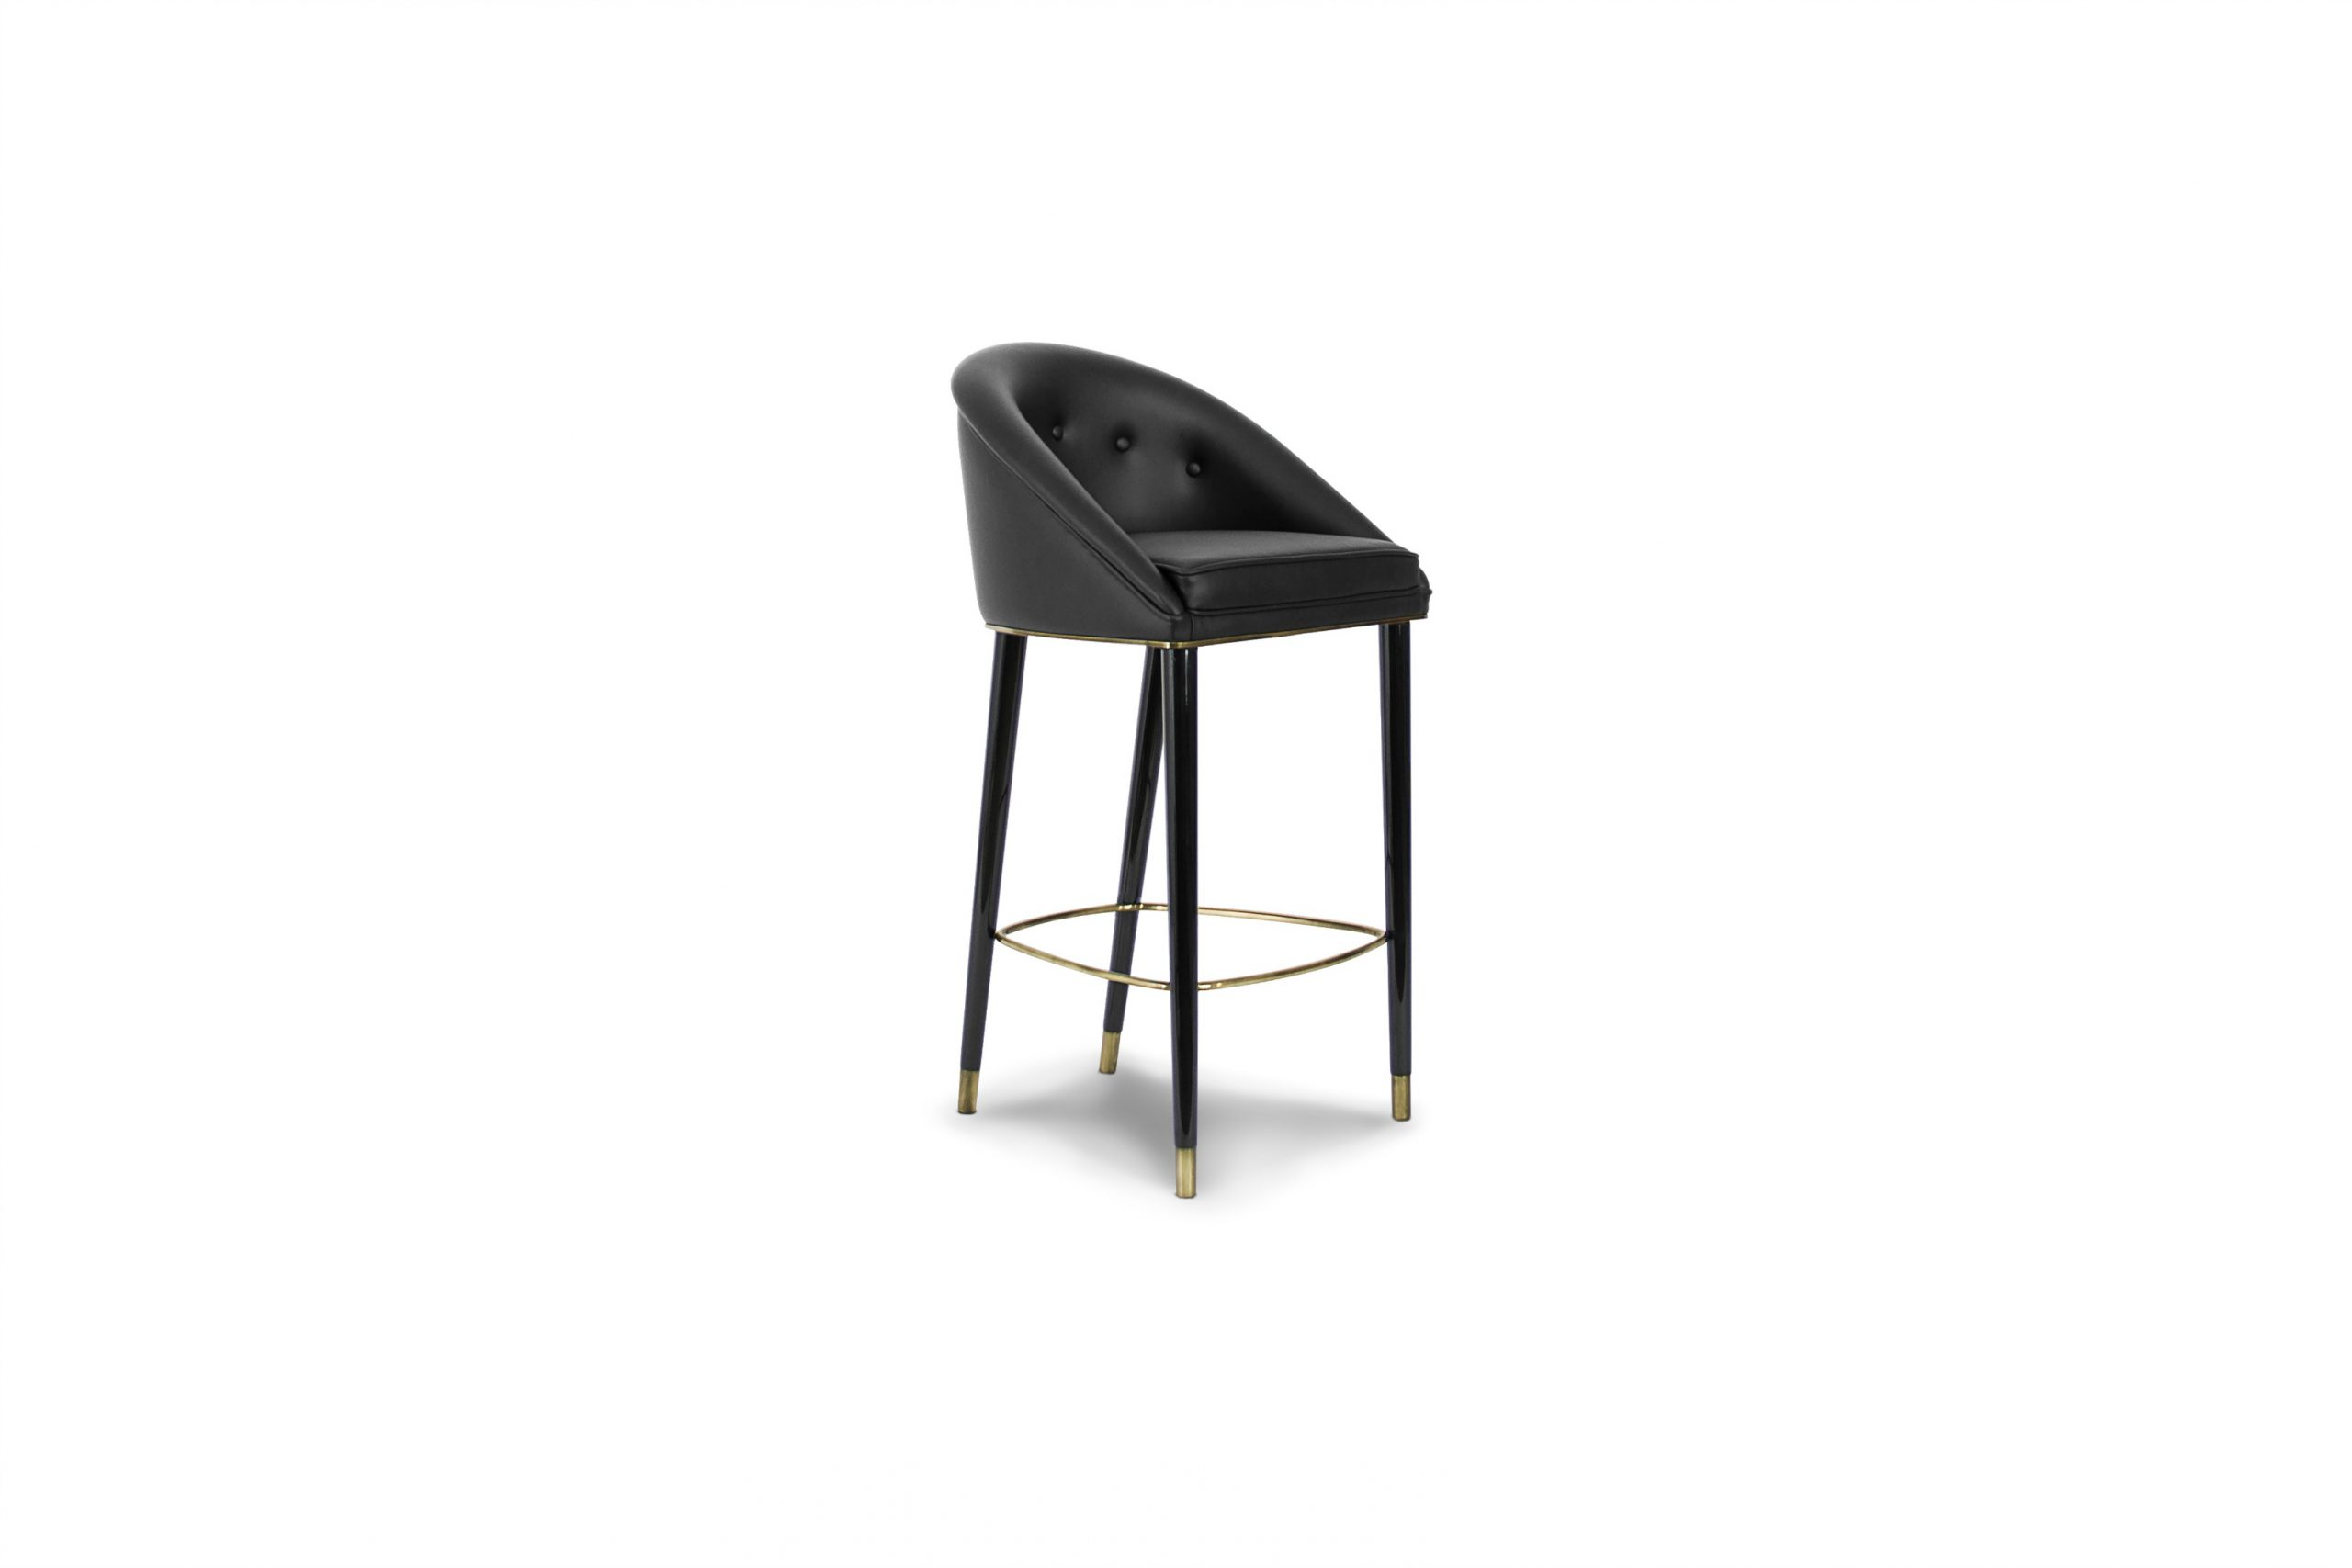 Dubai Interior Designers: The Top 10 Designers You Should Know About dubai interior designers Dubai Interior Designers: The Top 10 Designers You Should Know About malay bar chair 1 HR scaled